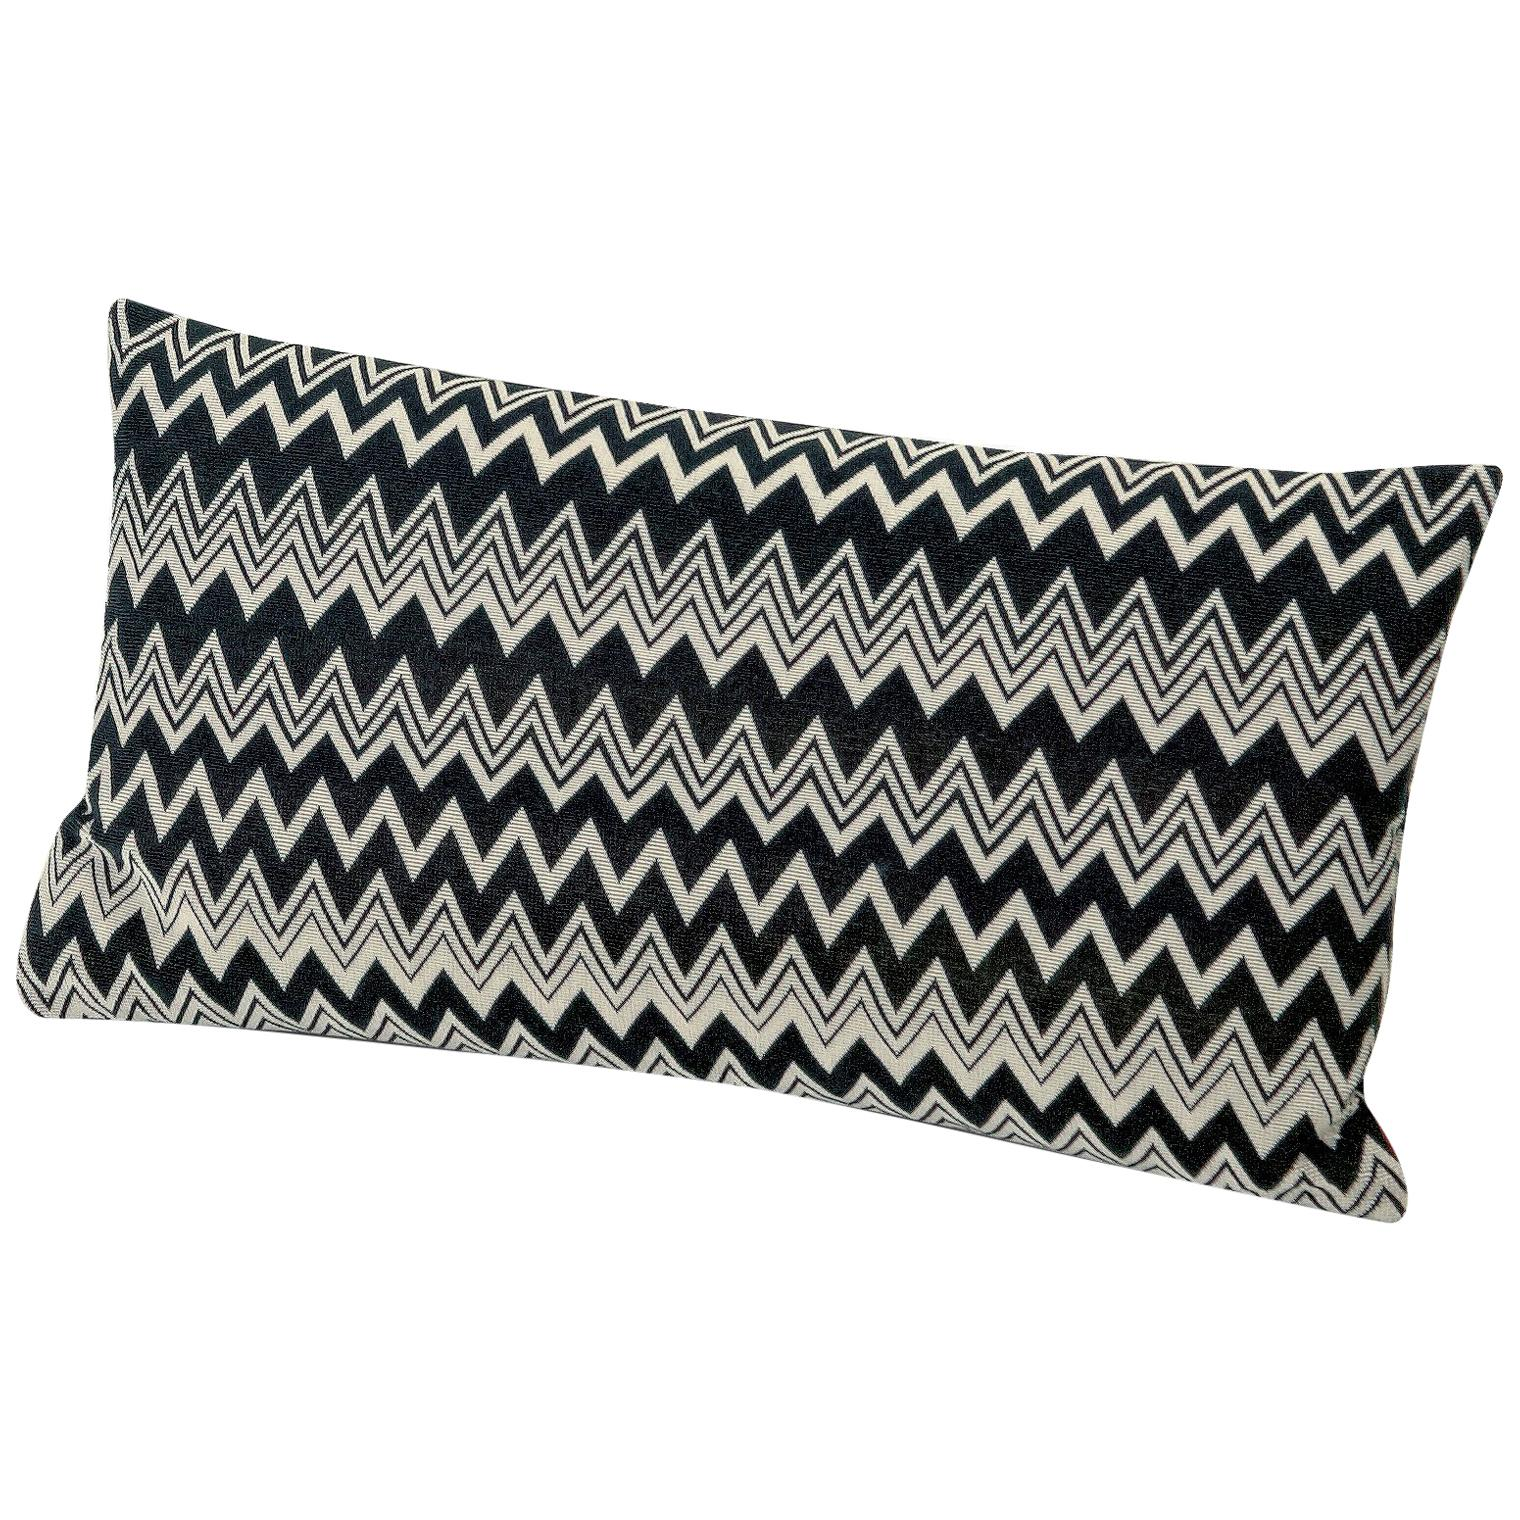 missoni home orvault cushion in black and white chevron print